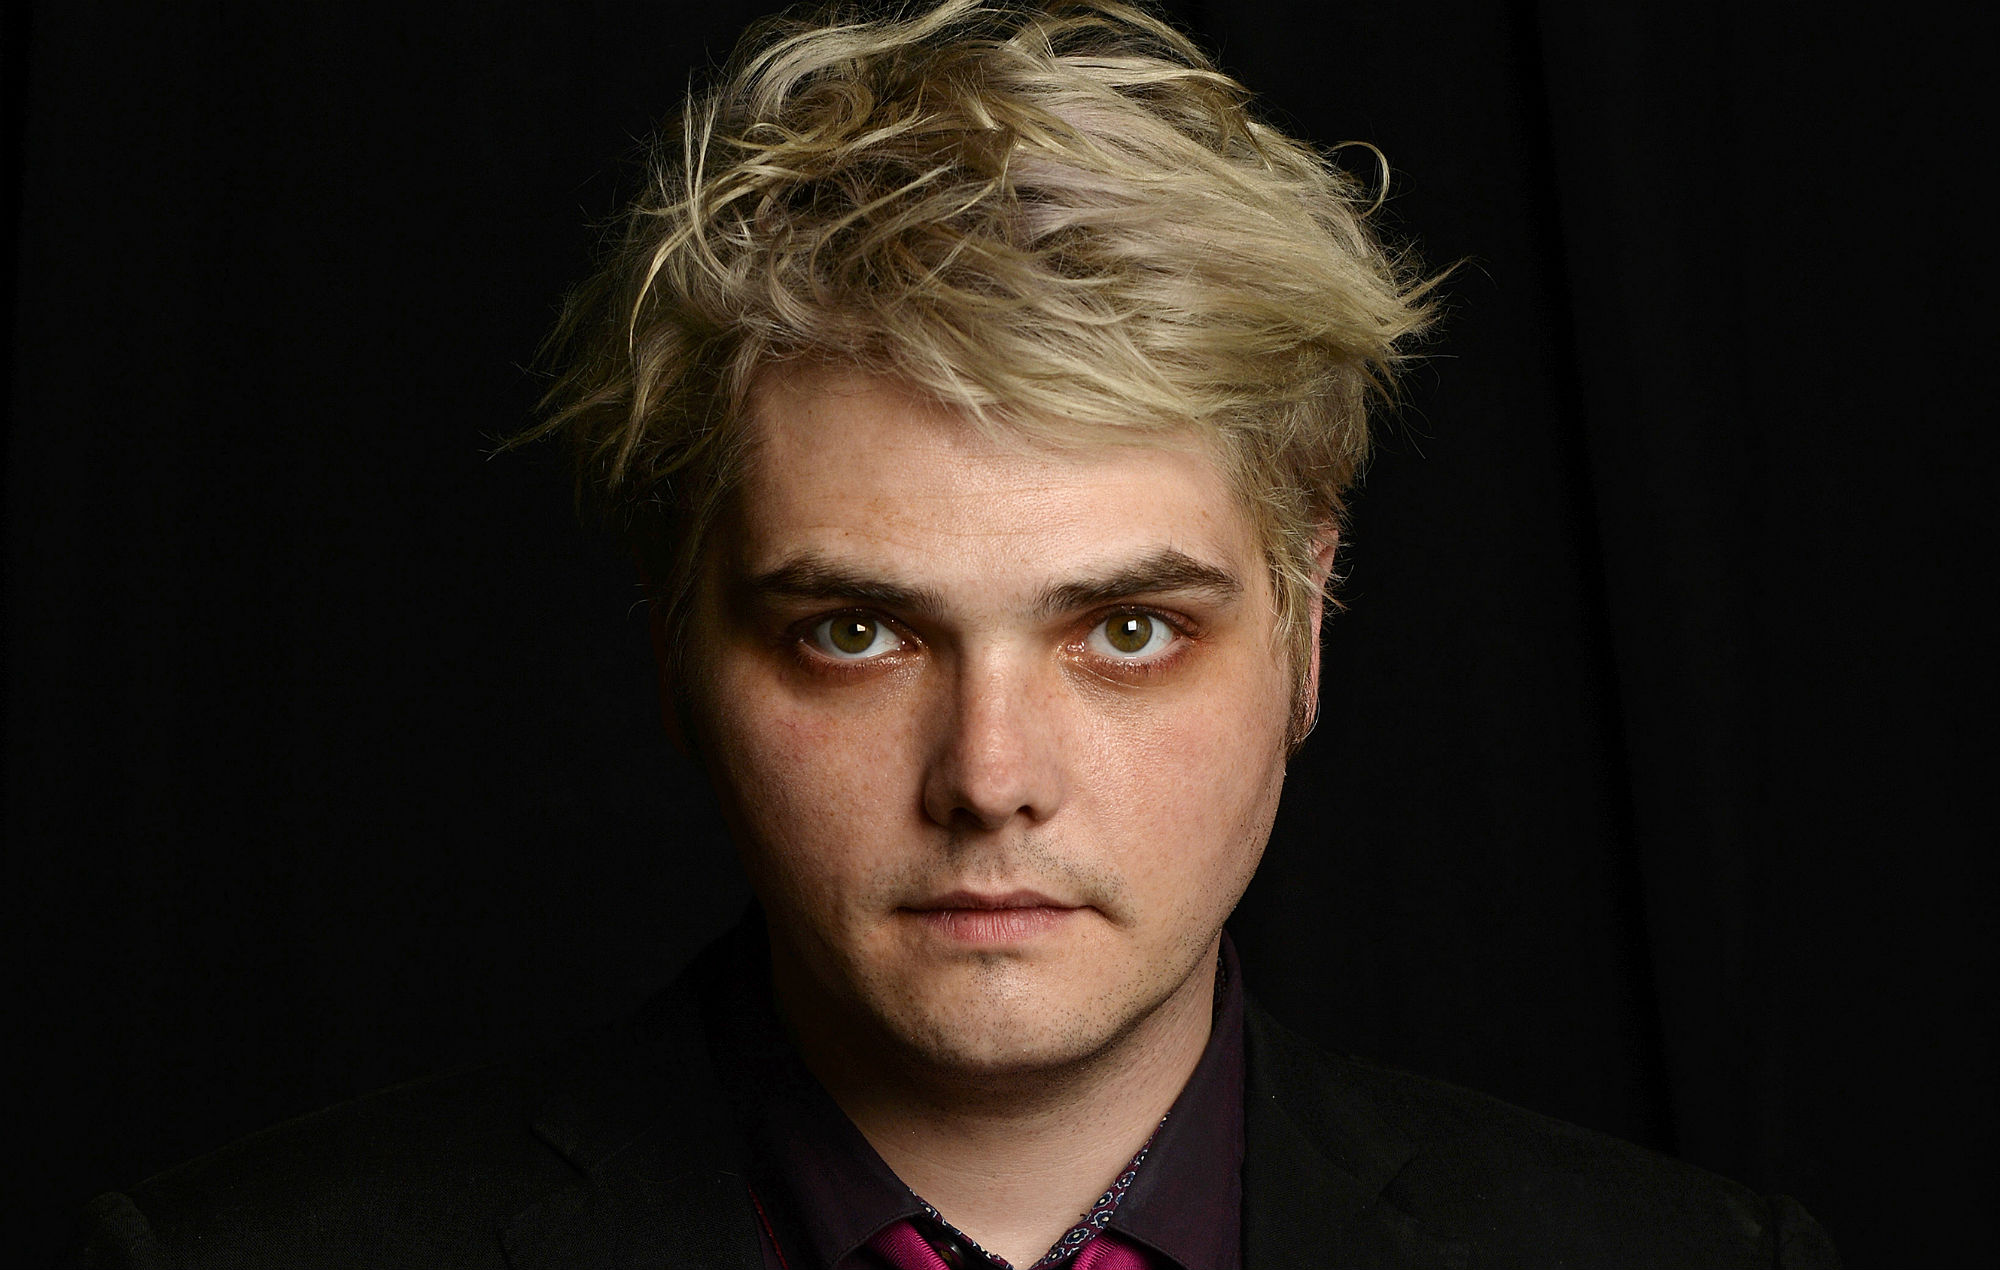 Gerard Way speaks out on the future of 'The Umbrella Academy'